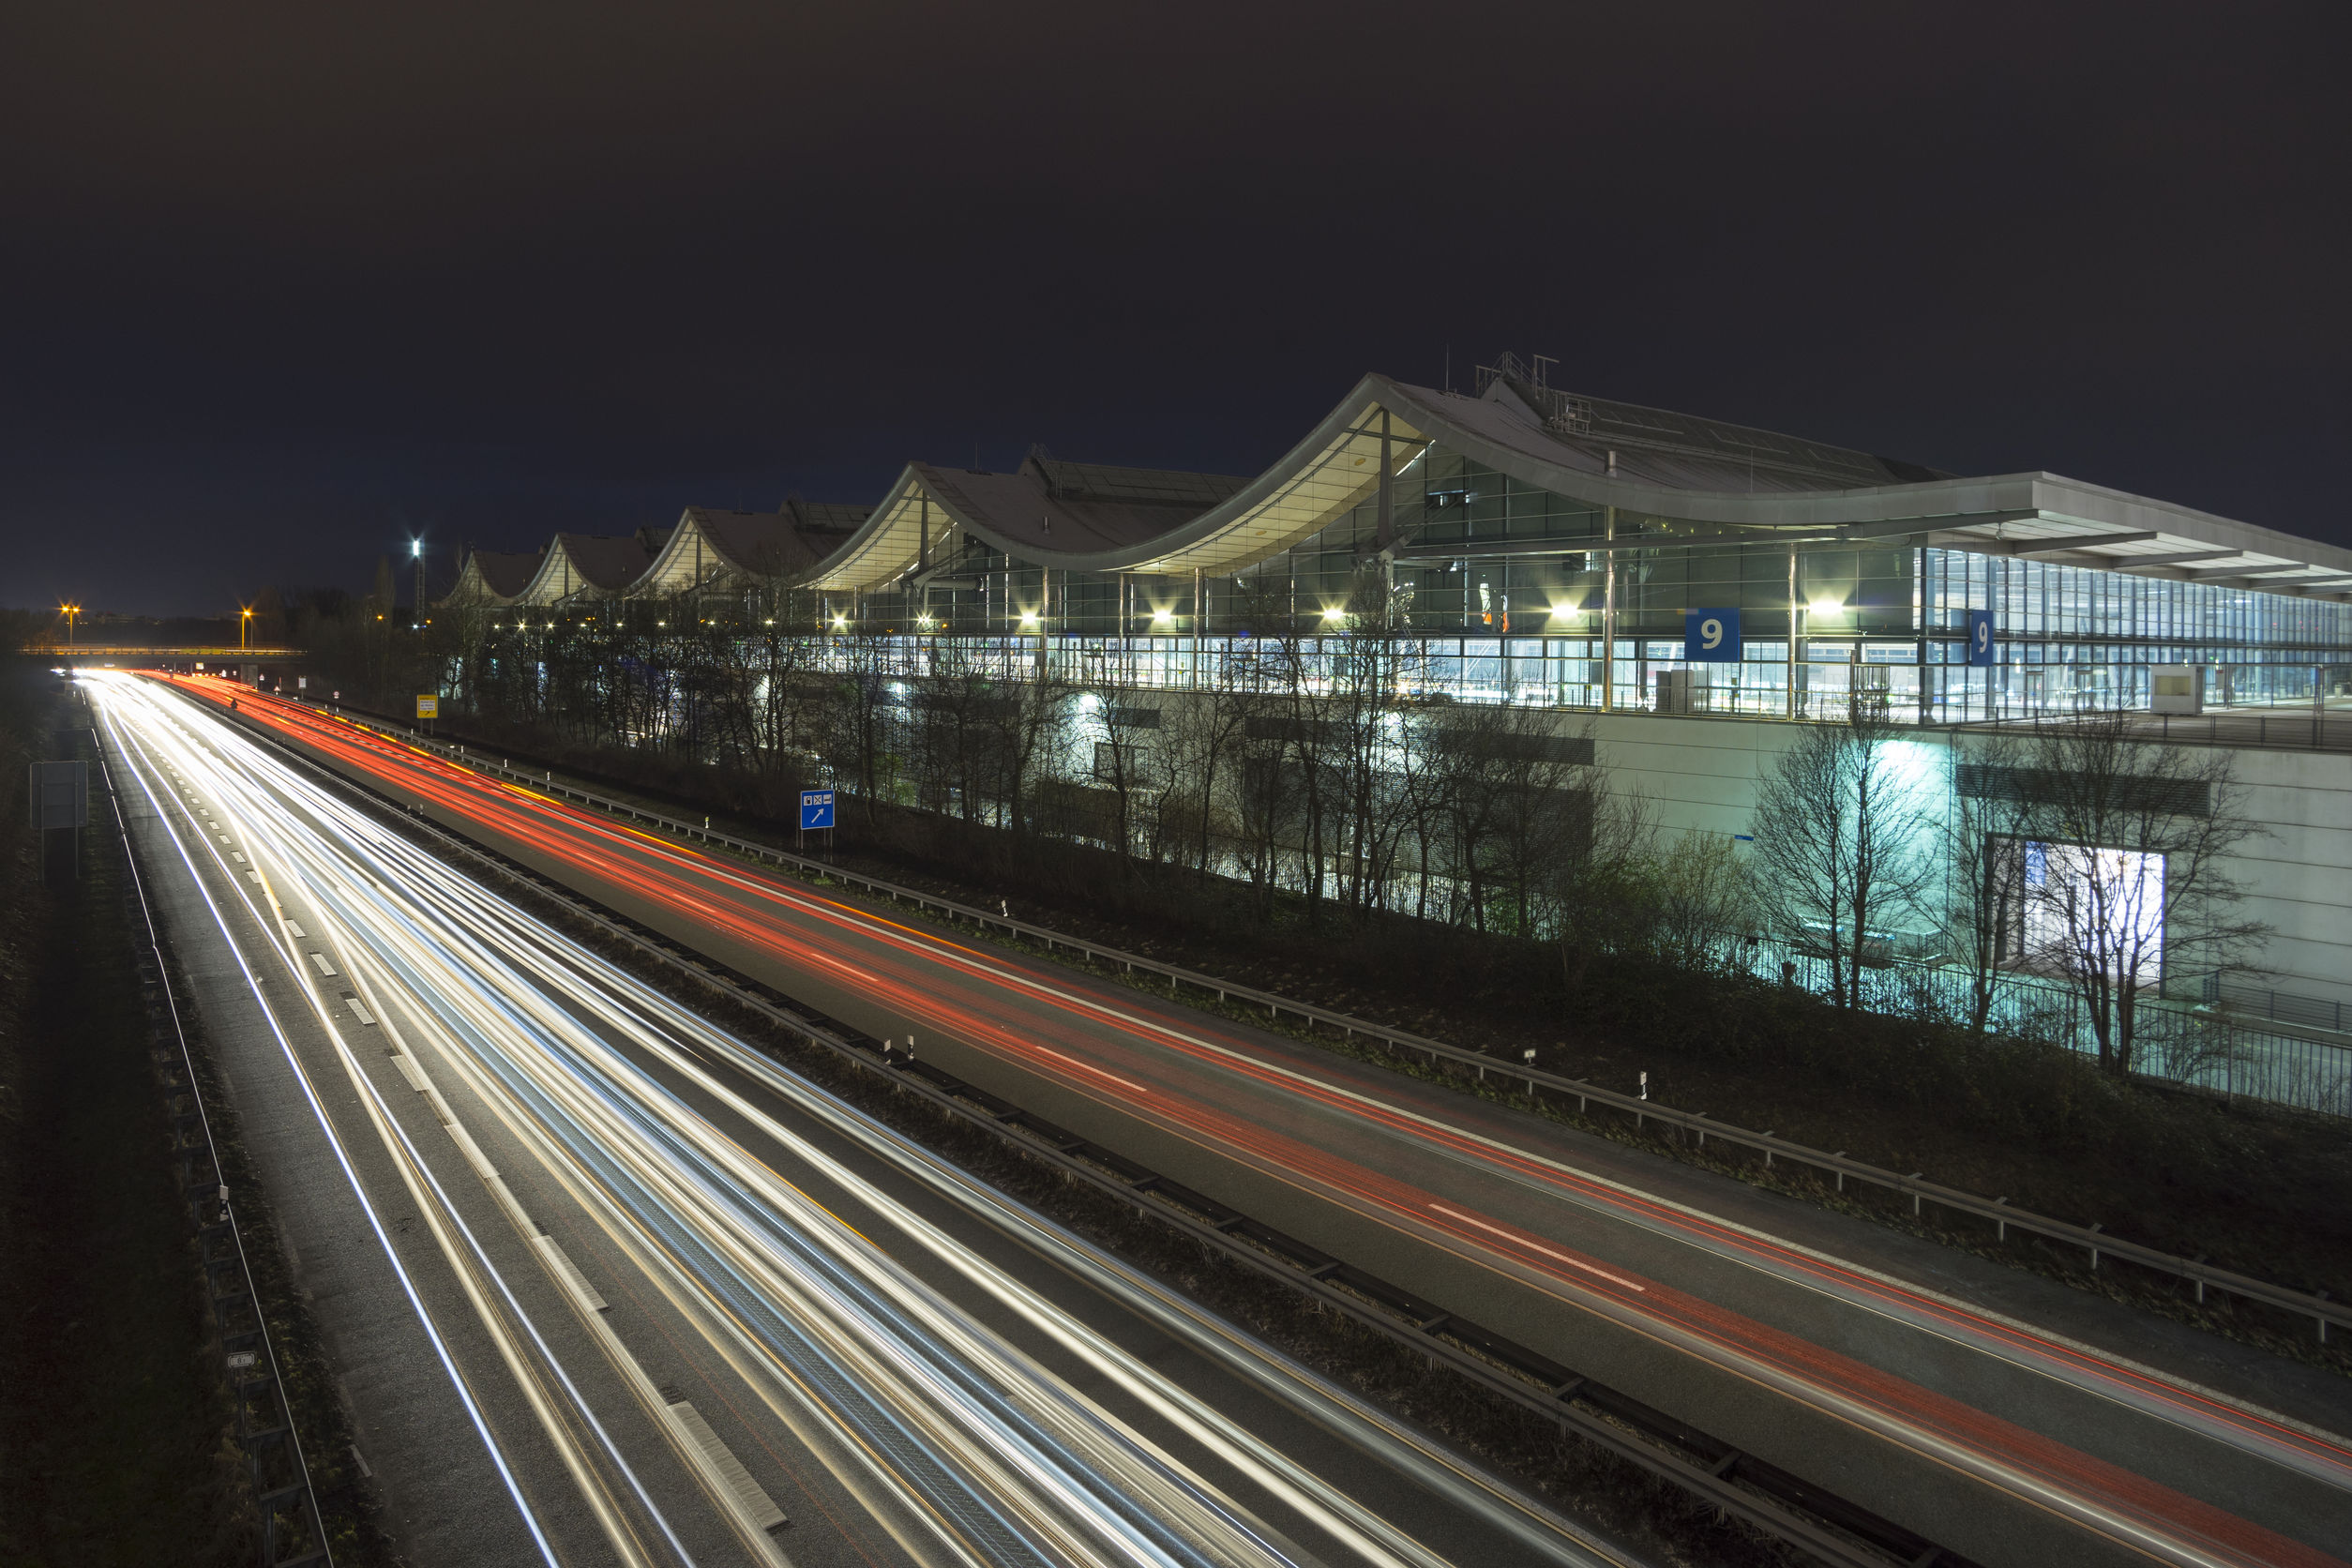 Hannover Messe fairground, the largest exhibition ground in the world.